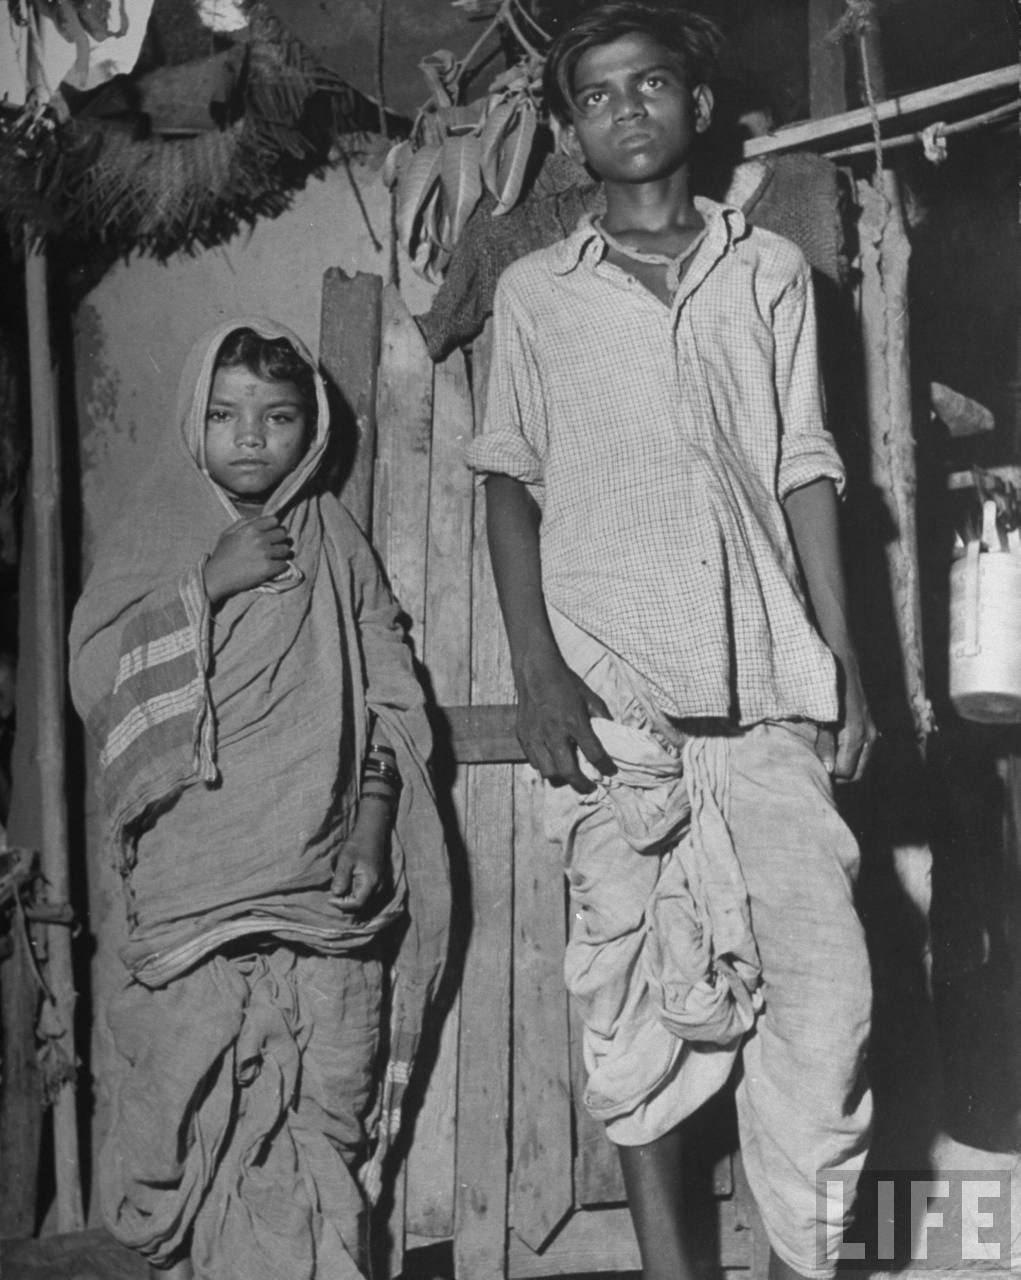 Indian child bride (Age 7) with her husband (Age 14) - Bombay (Mumbai) 1946